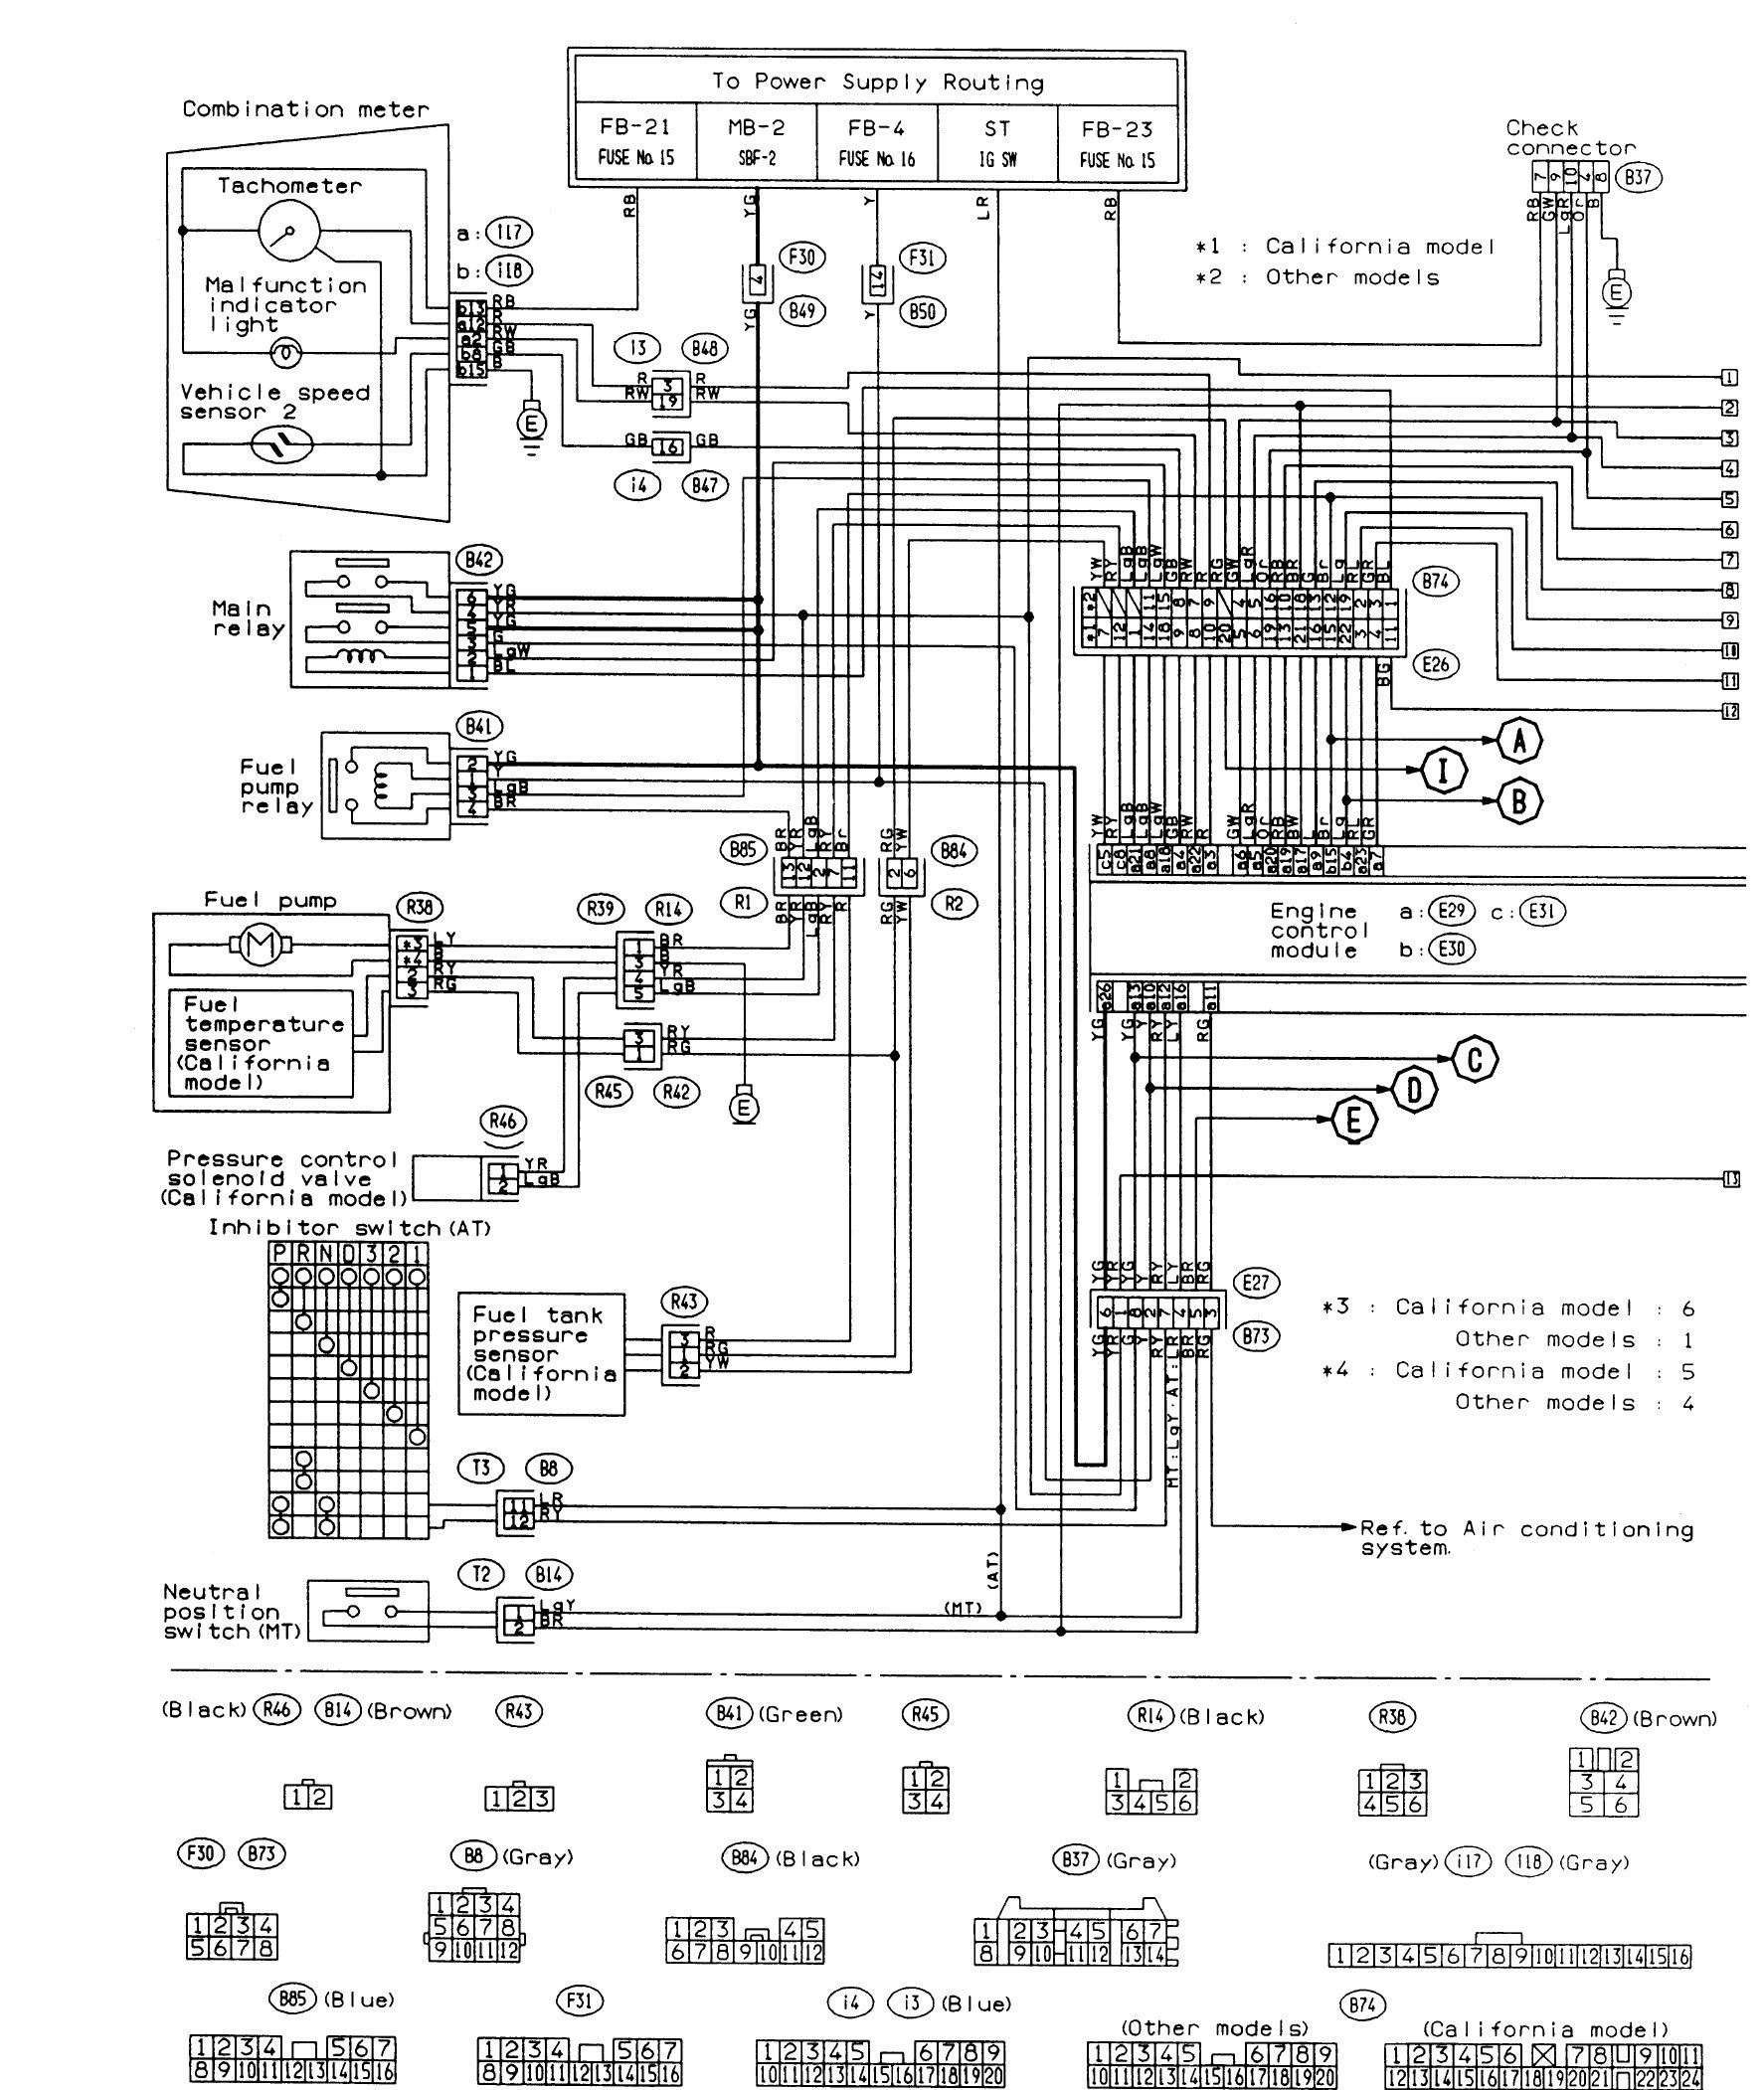 Subaru Wiring Diagram Color Codes | Electrical diagram ...